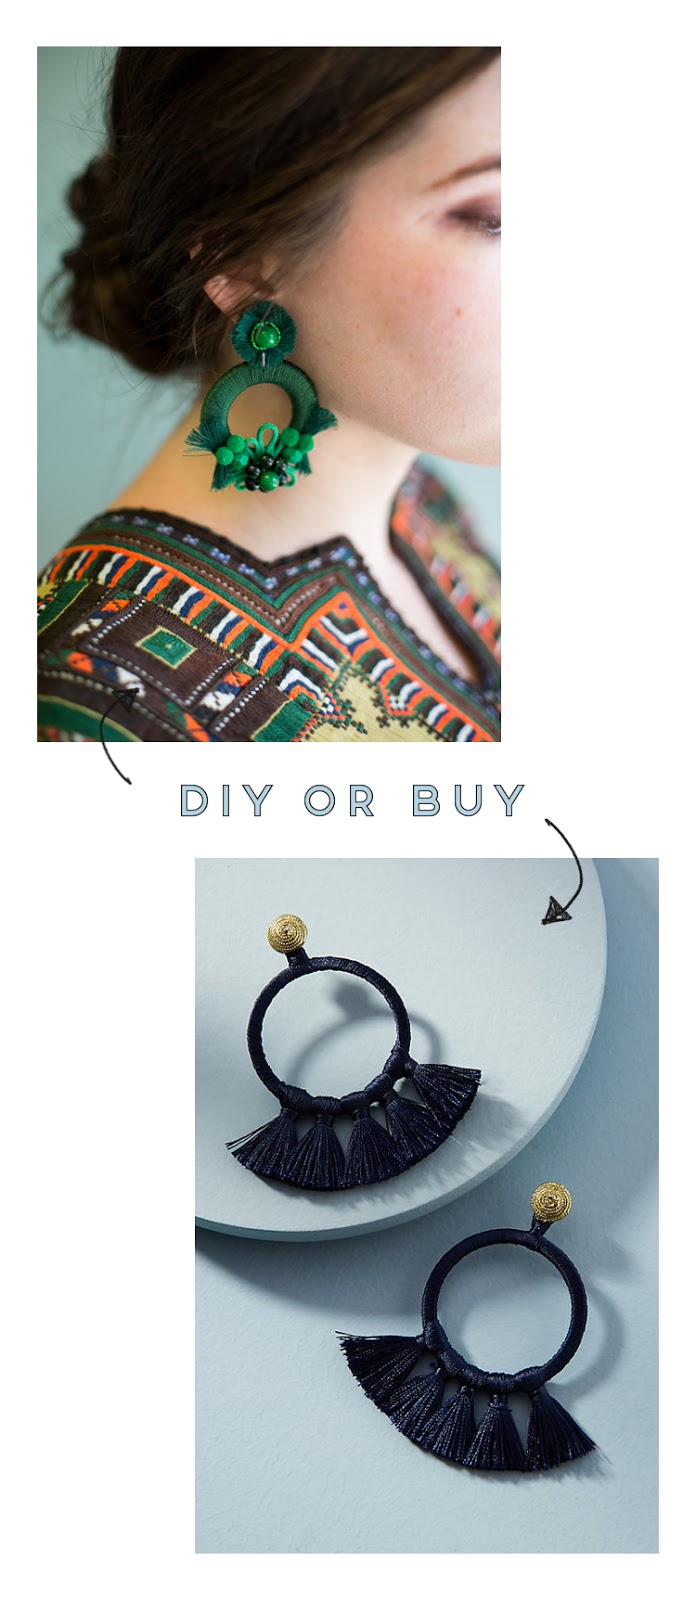 DIY OR BUY